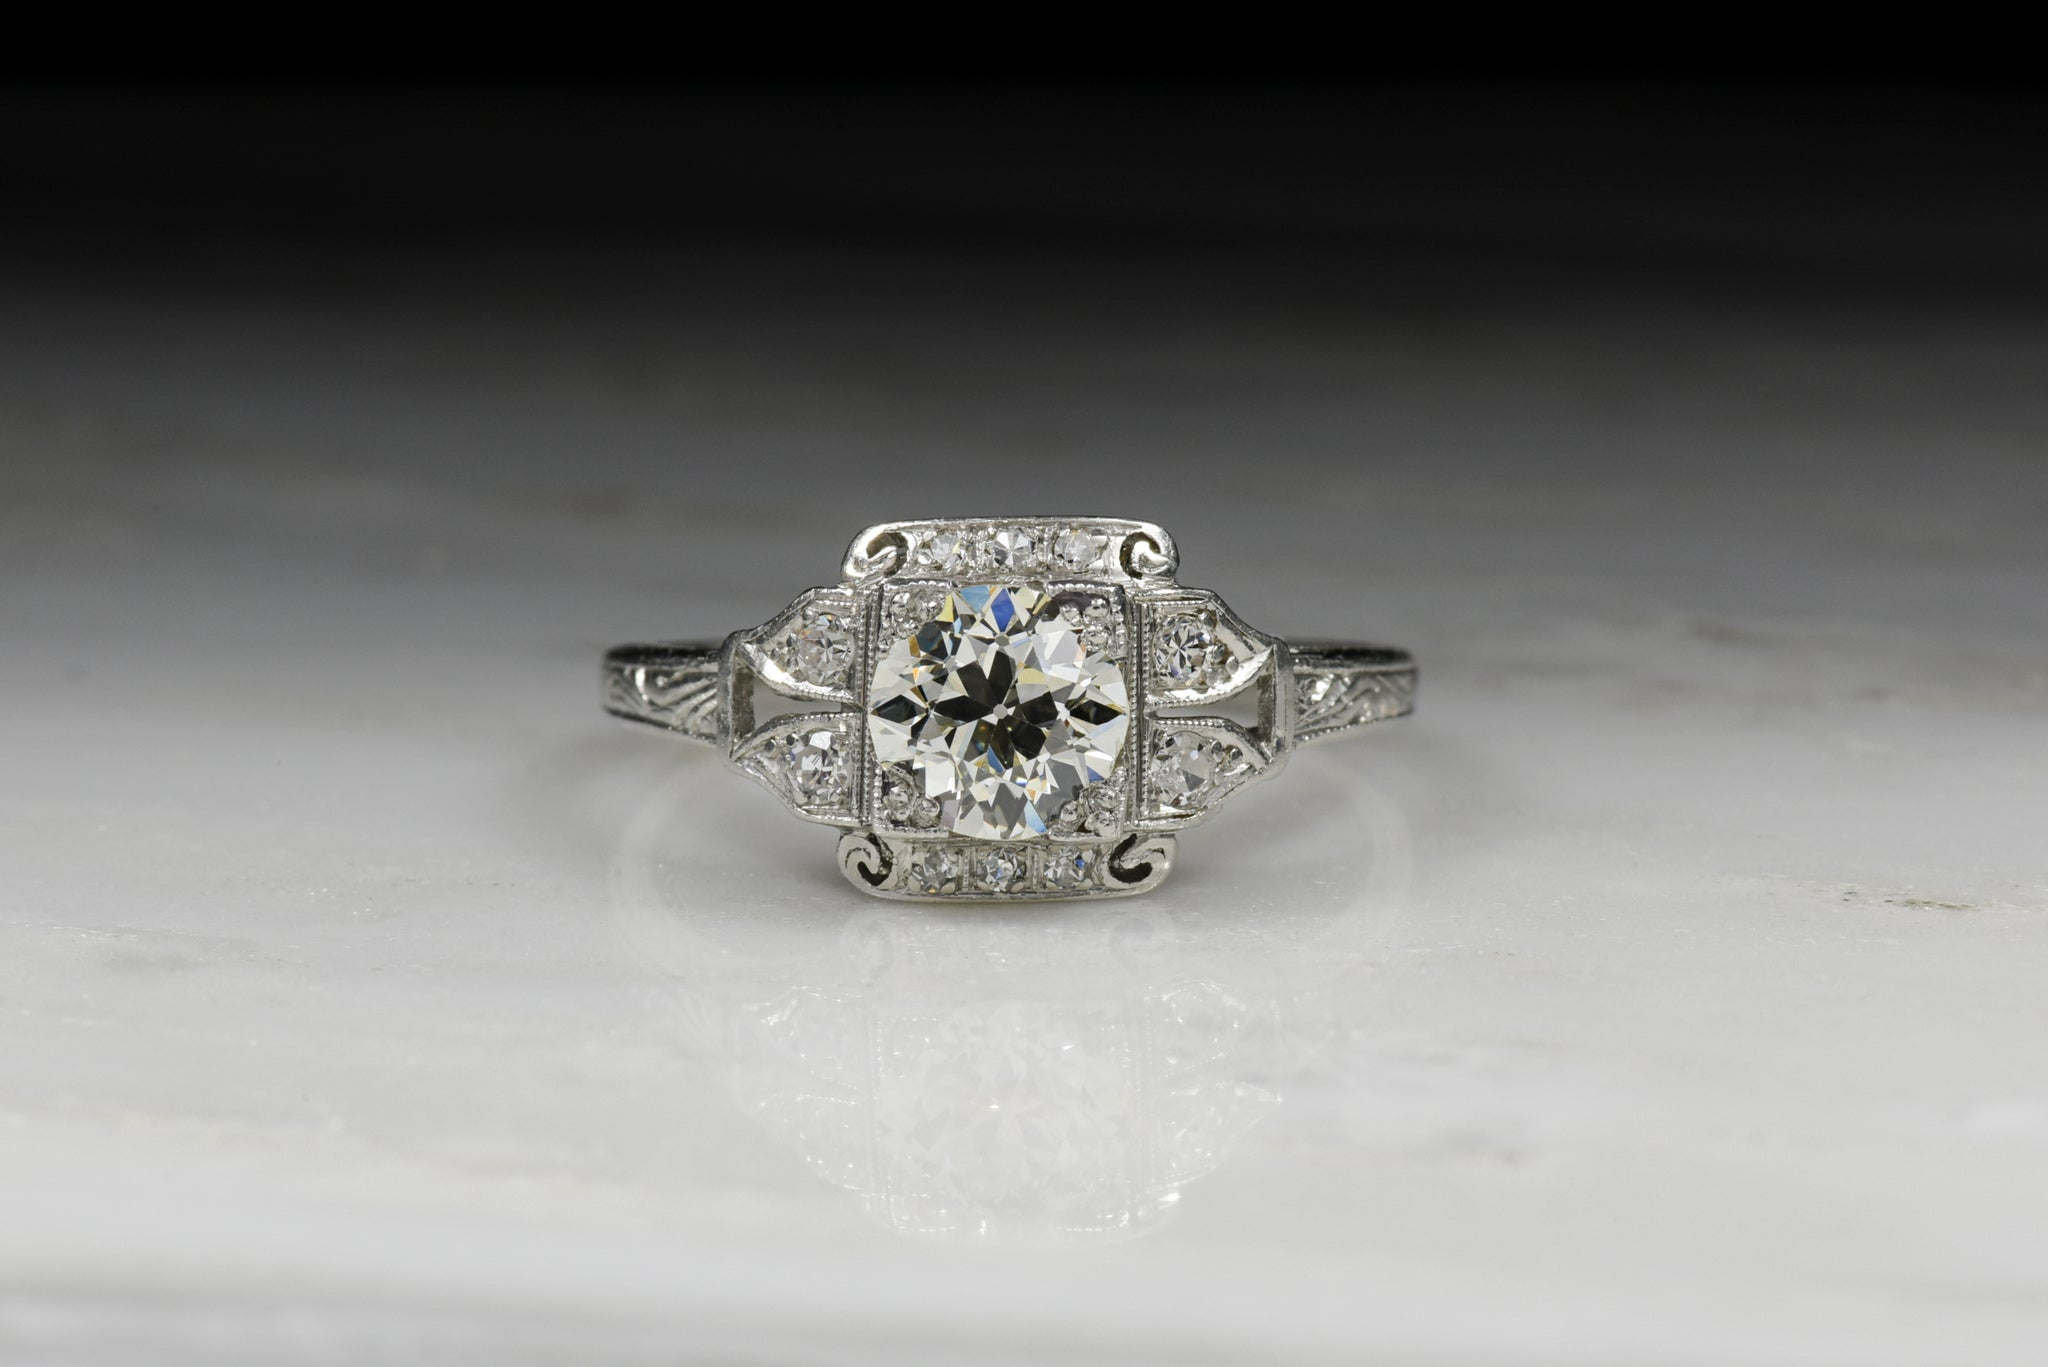 bf637566134be Vintage Edwardian   Art Deco Engagement Ring  Old European Cut ...